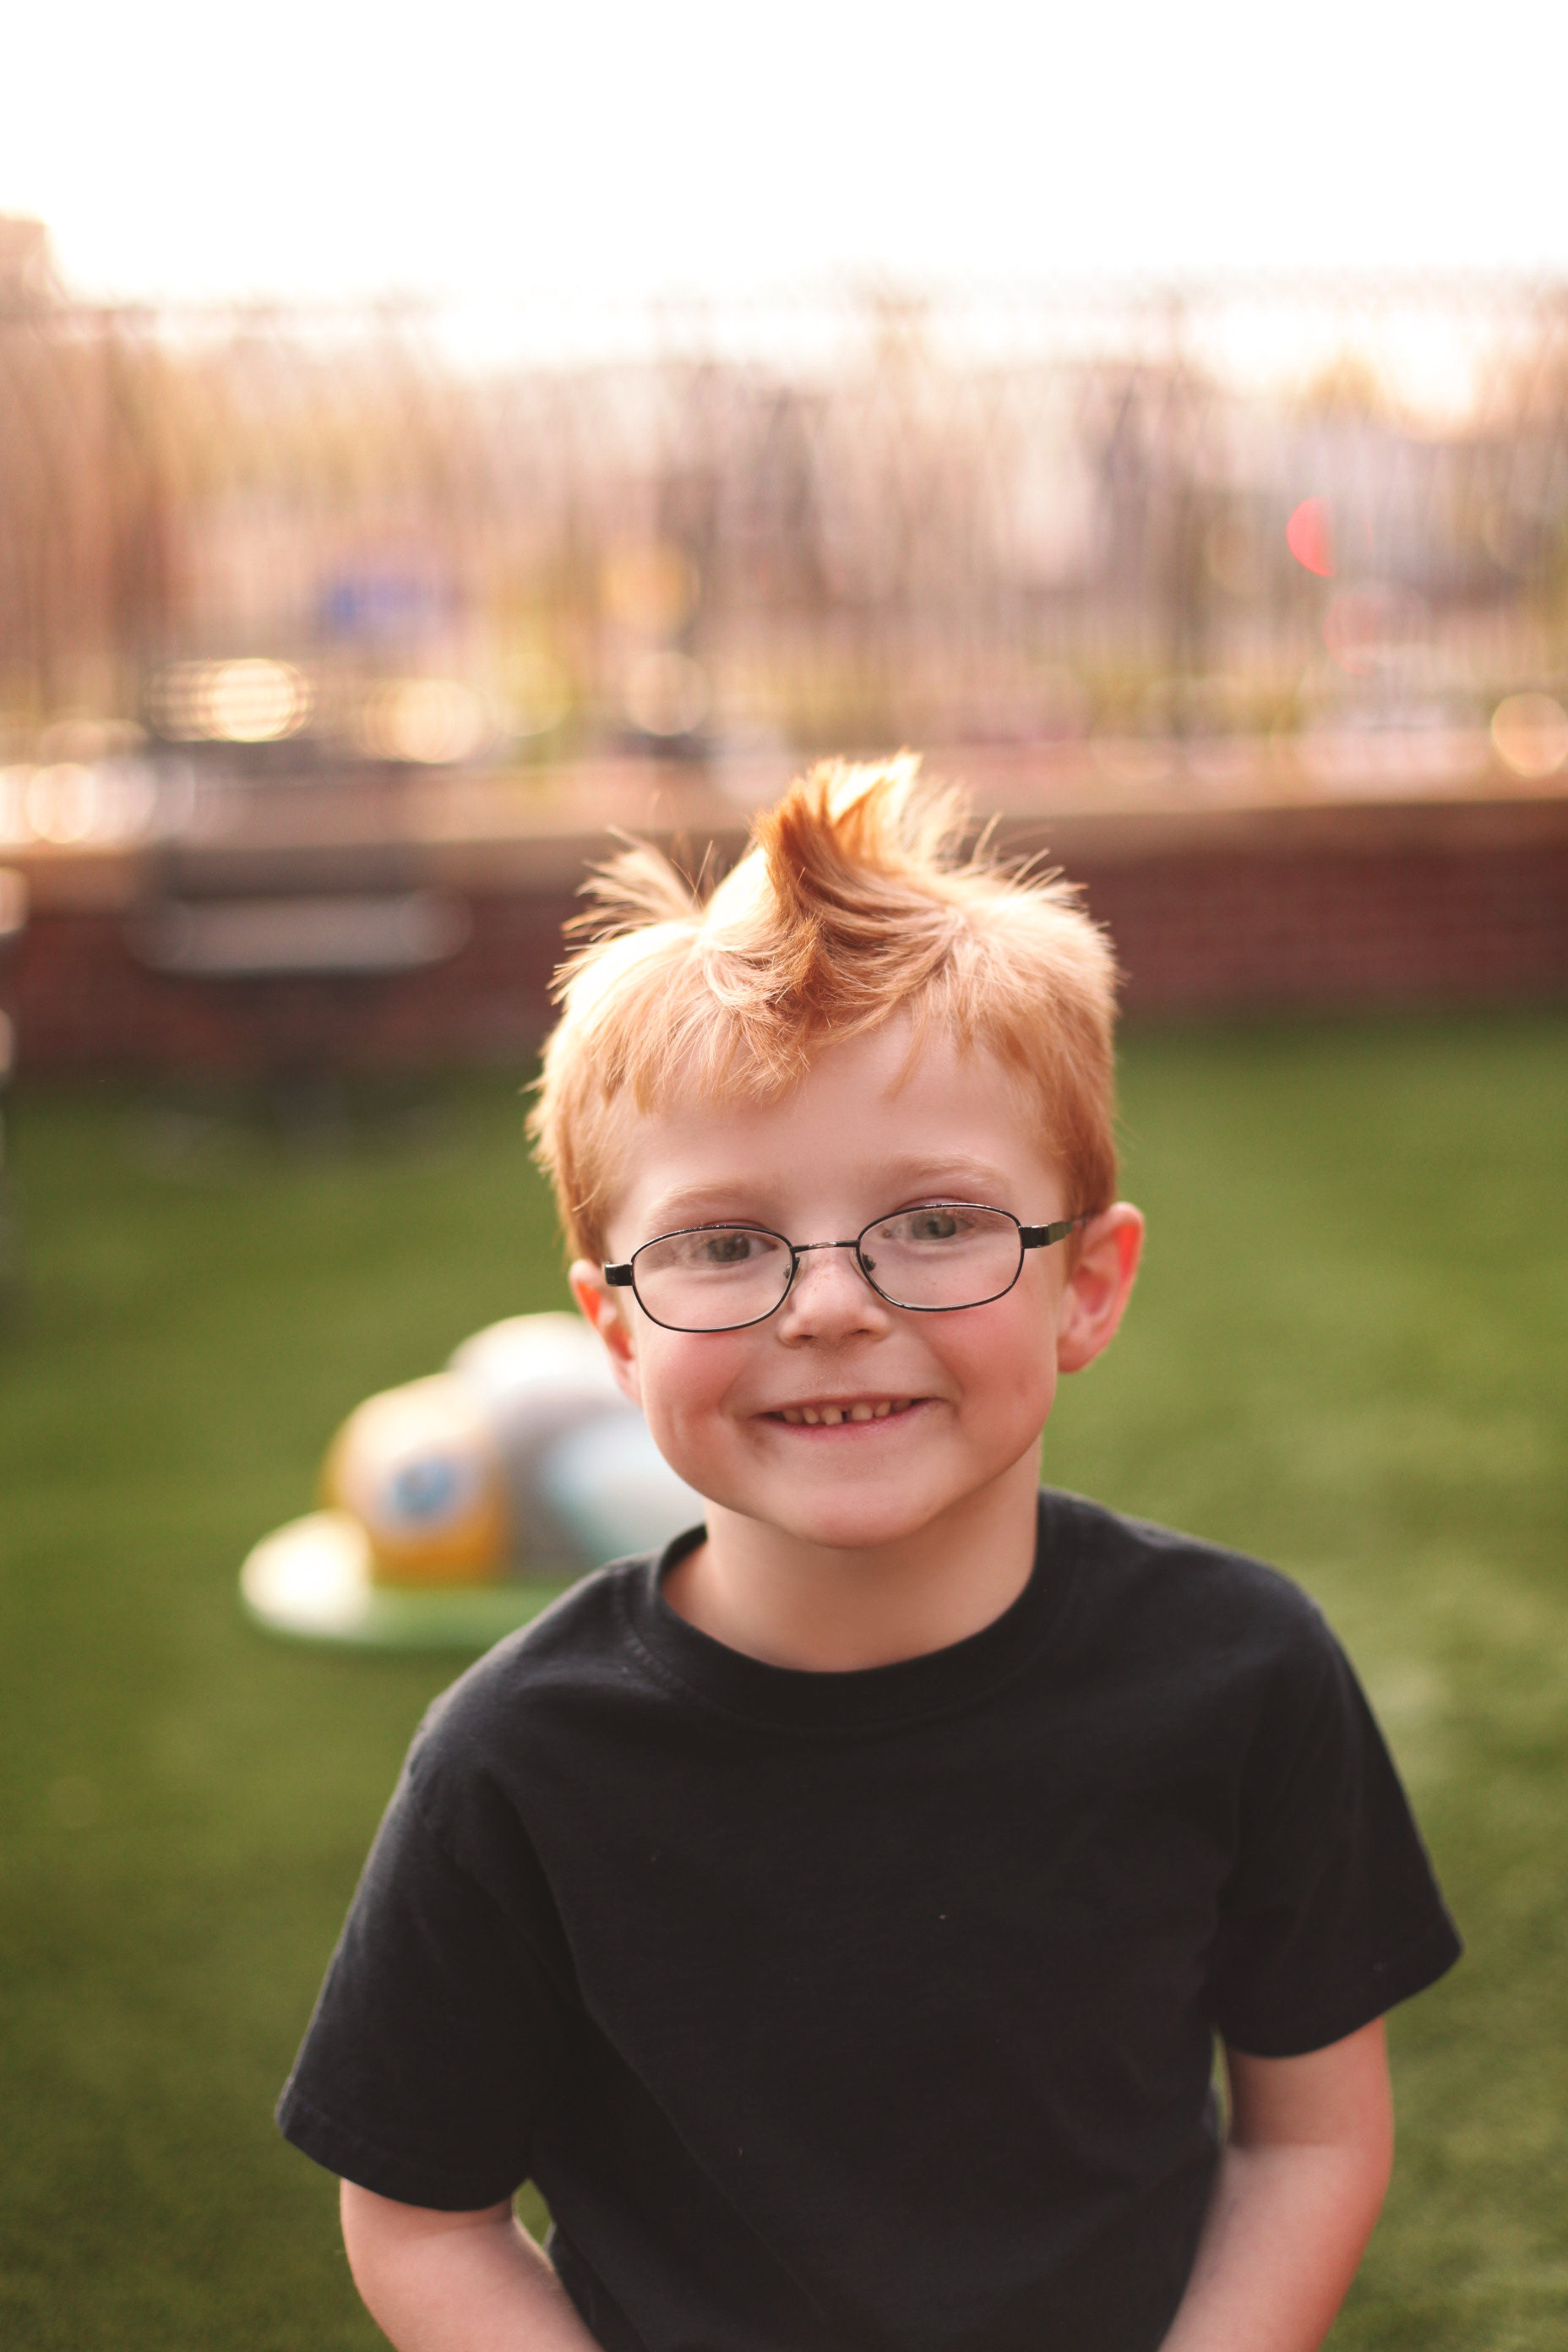 Red-haired boy in glasses smiling on the Ronald McDonald House playground